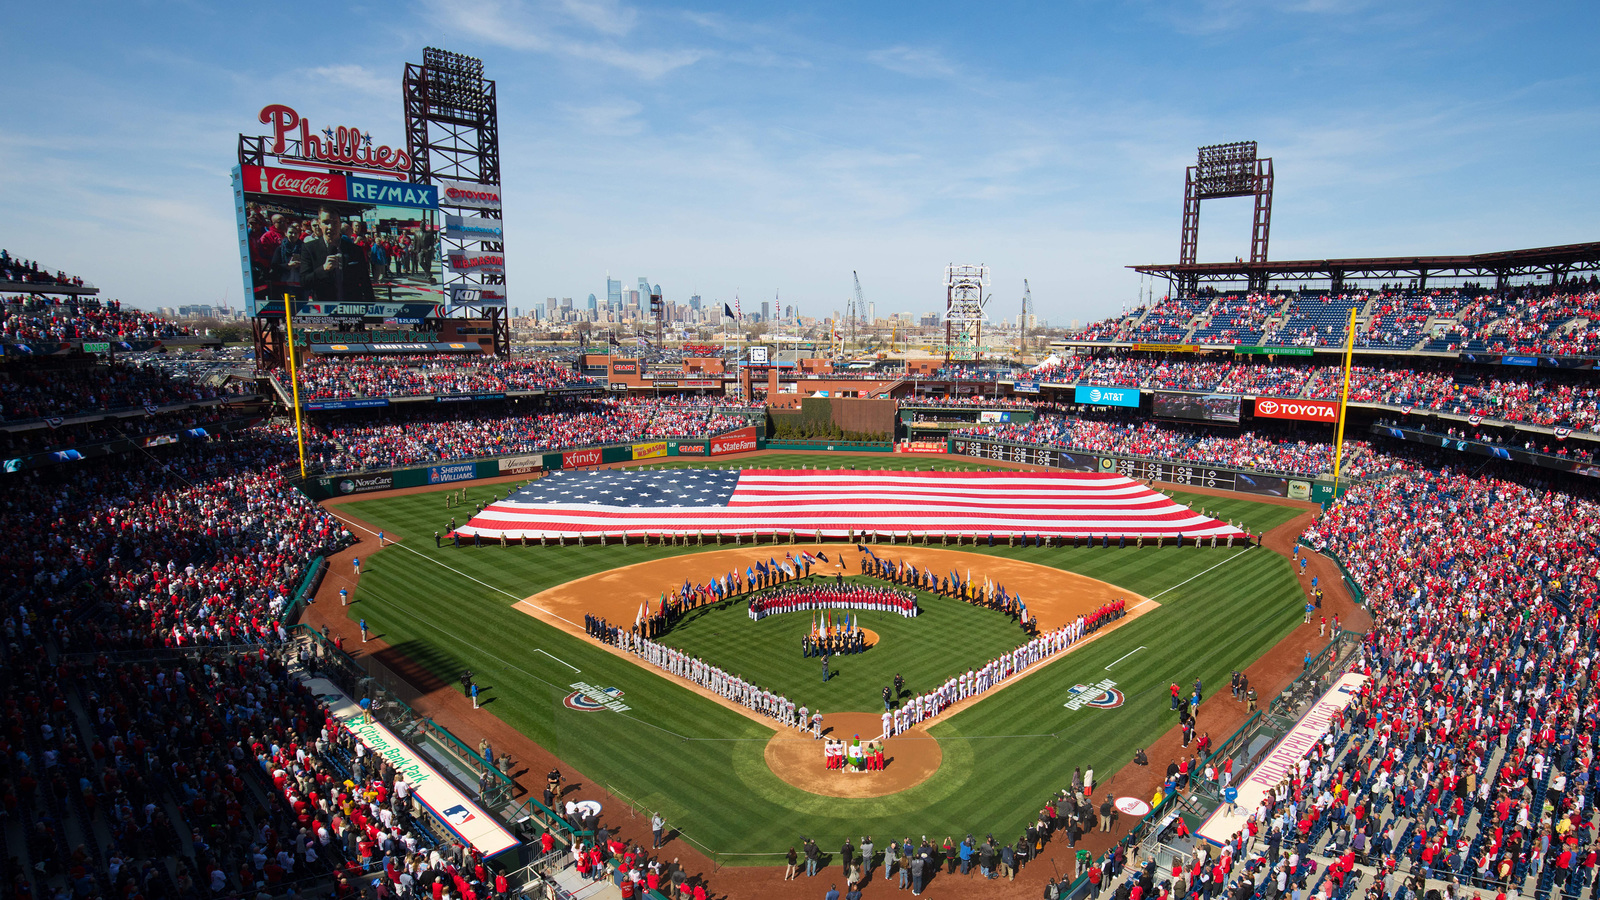 'A birth of something new': What we miss with opening day postponed